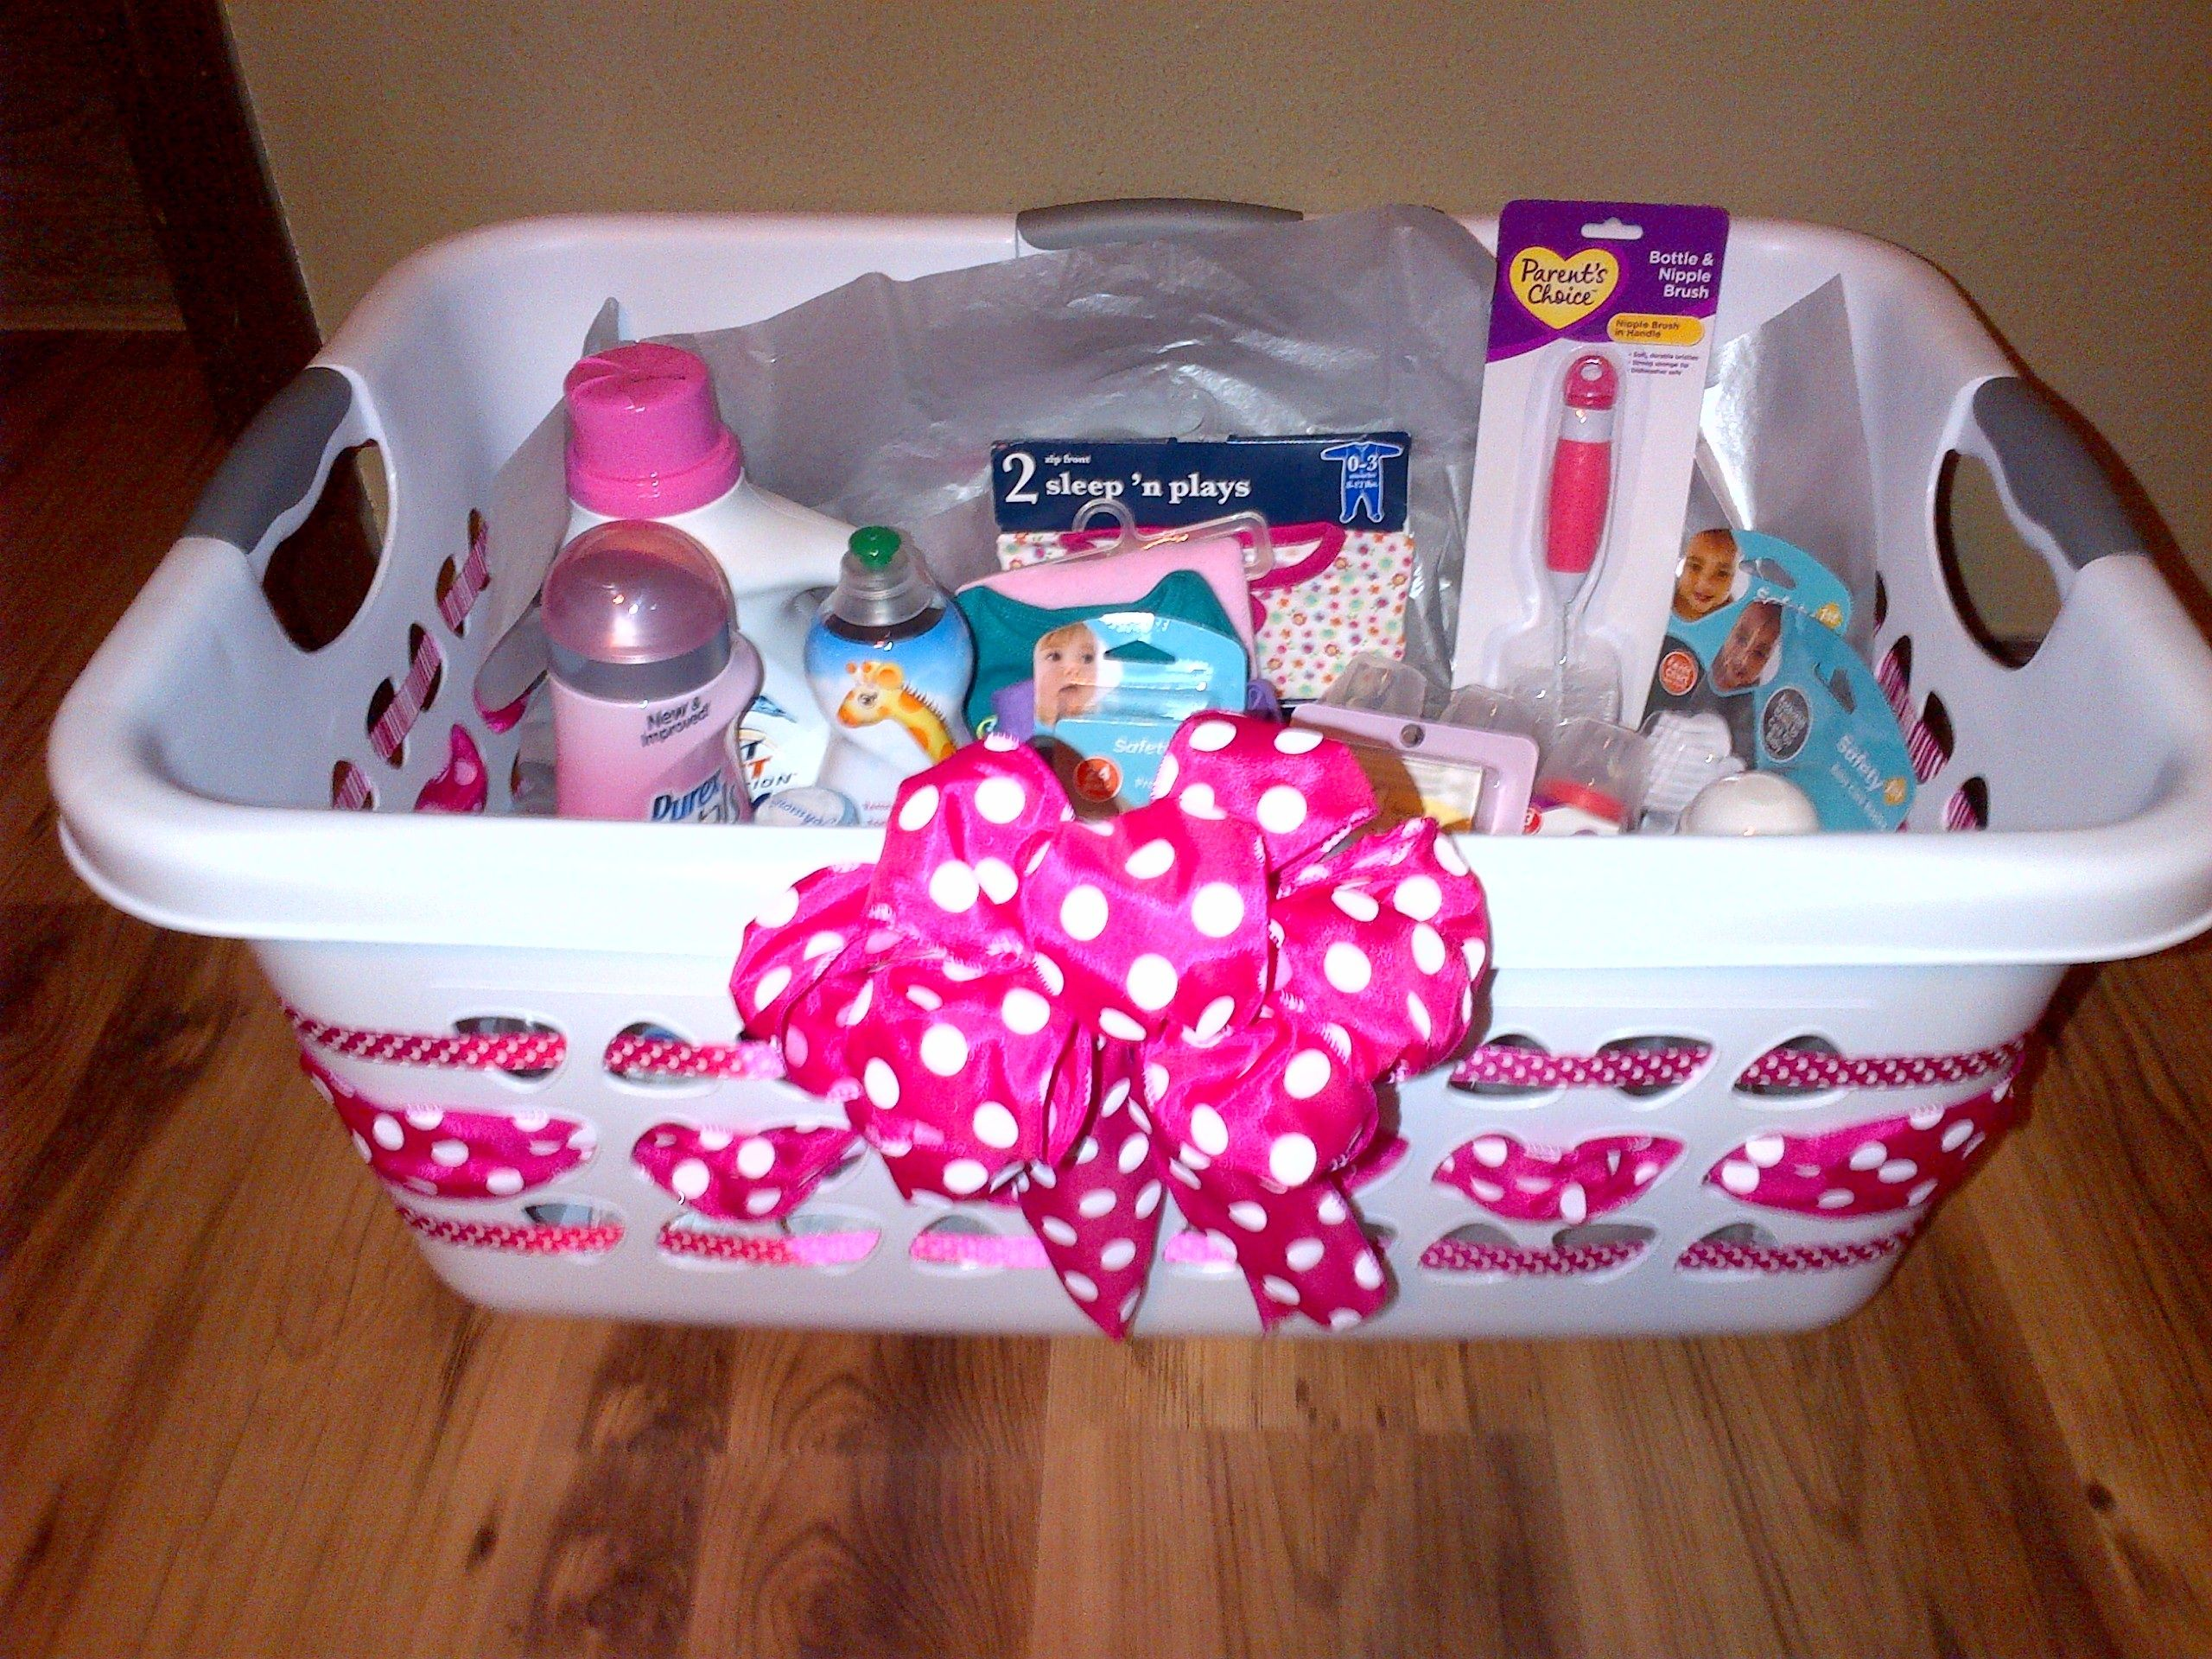 Baby Laundry Bin Laundry Basket Baby Gifts Gift Ideas Pinterest Laundry